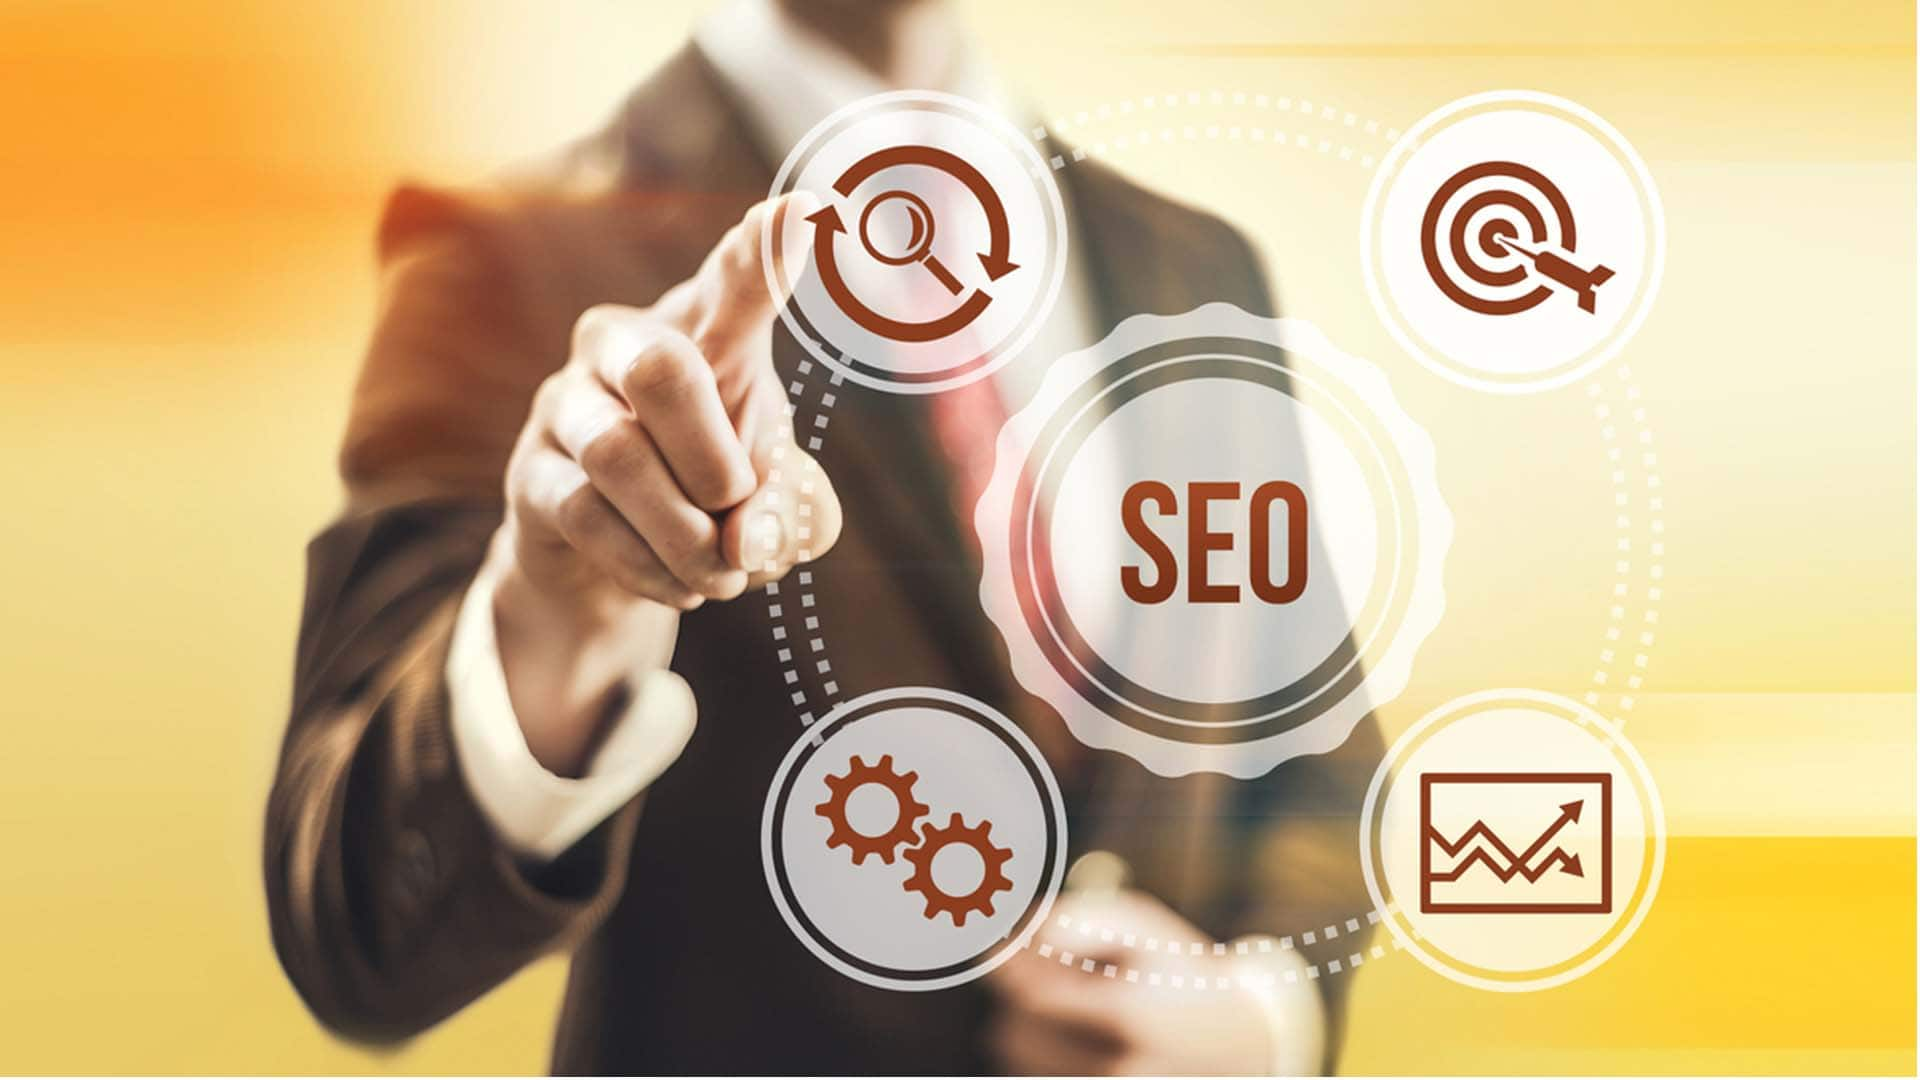 Top SEO Techniques that will Dominate in 2018